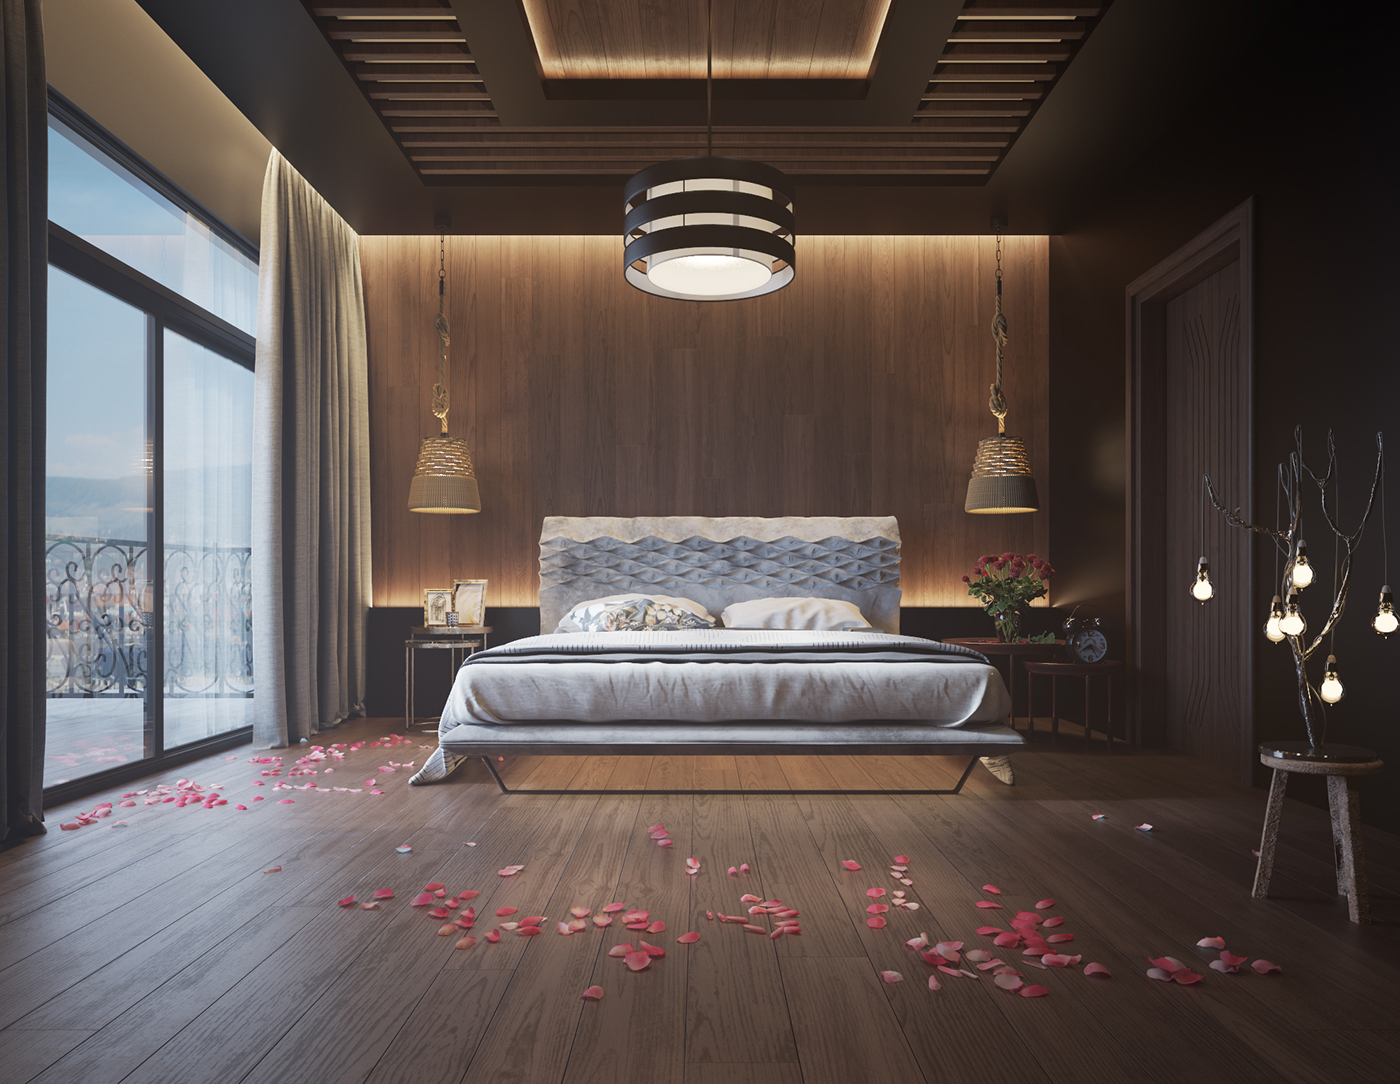 Wood Walls In The Bedroom wood walls in the bedroom Design Inspiration – Wood Walls In The Bedroom 52d80c36352253